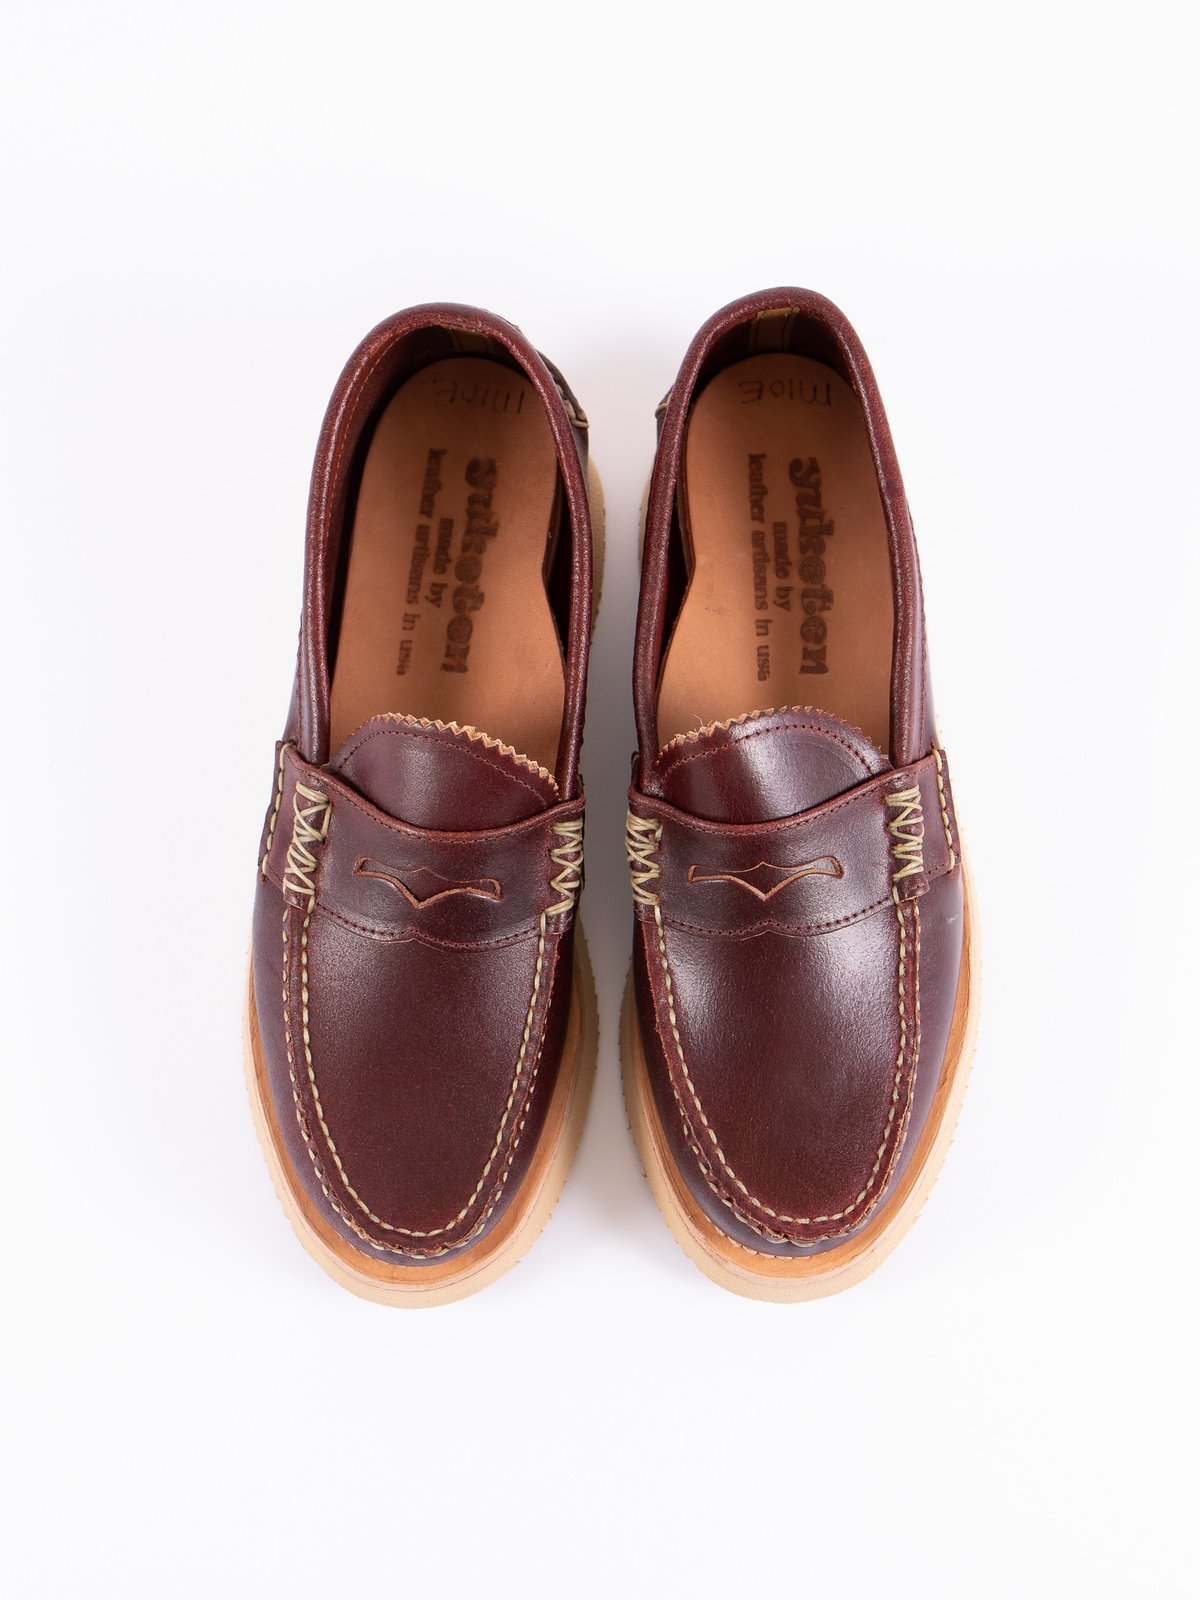 FO Wax Red Loafer Shoe Exclusive - Image 6